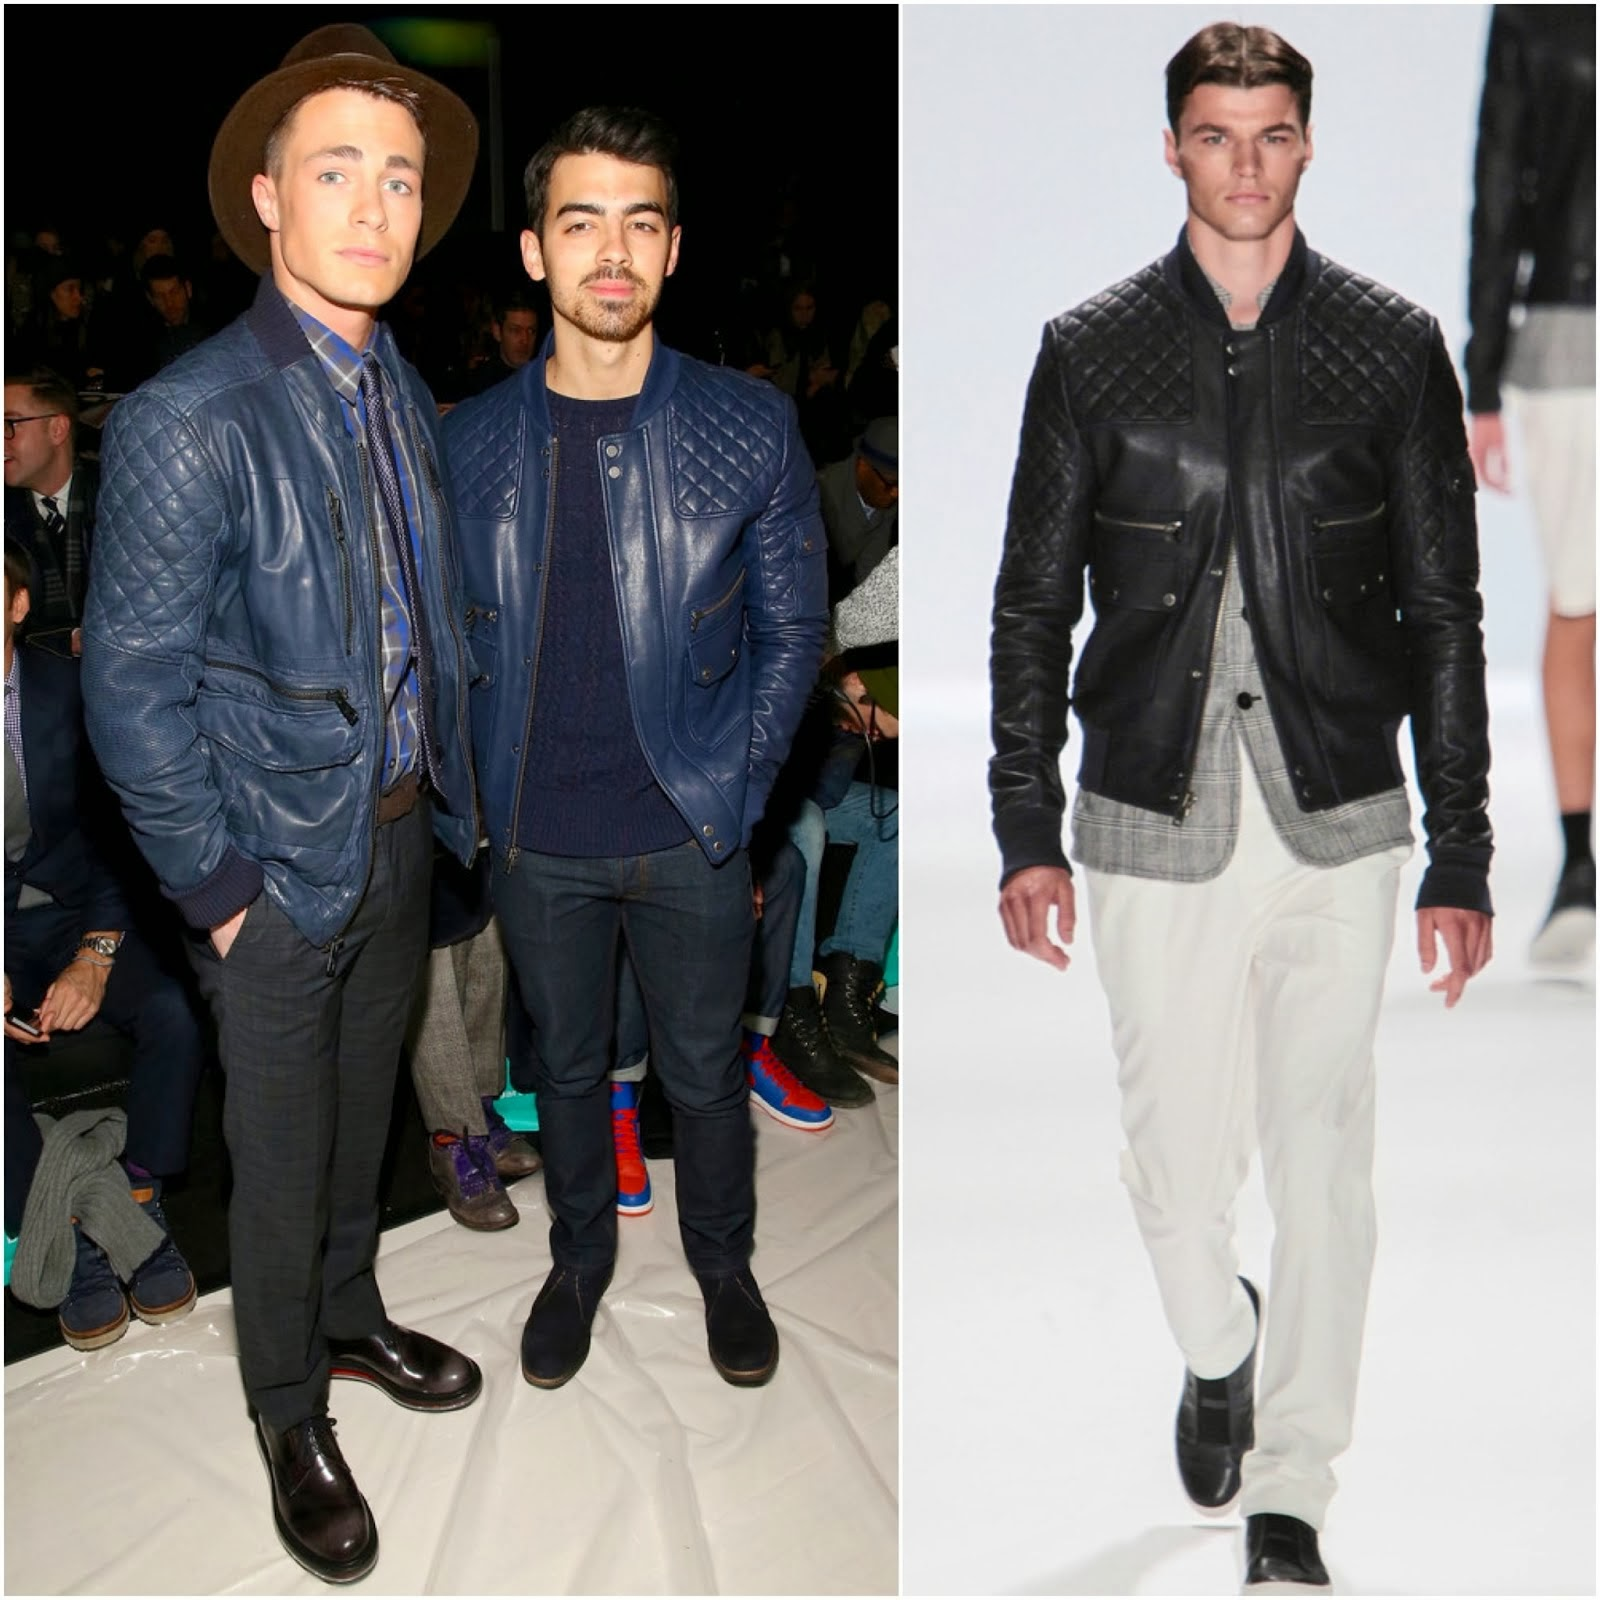 Colton Haynes and Joe Jonas in Richard Chai - New York Fashion Week FW14